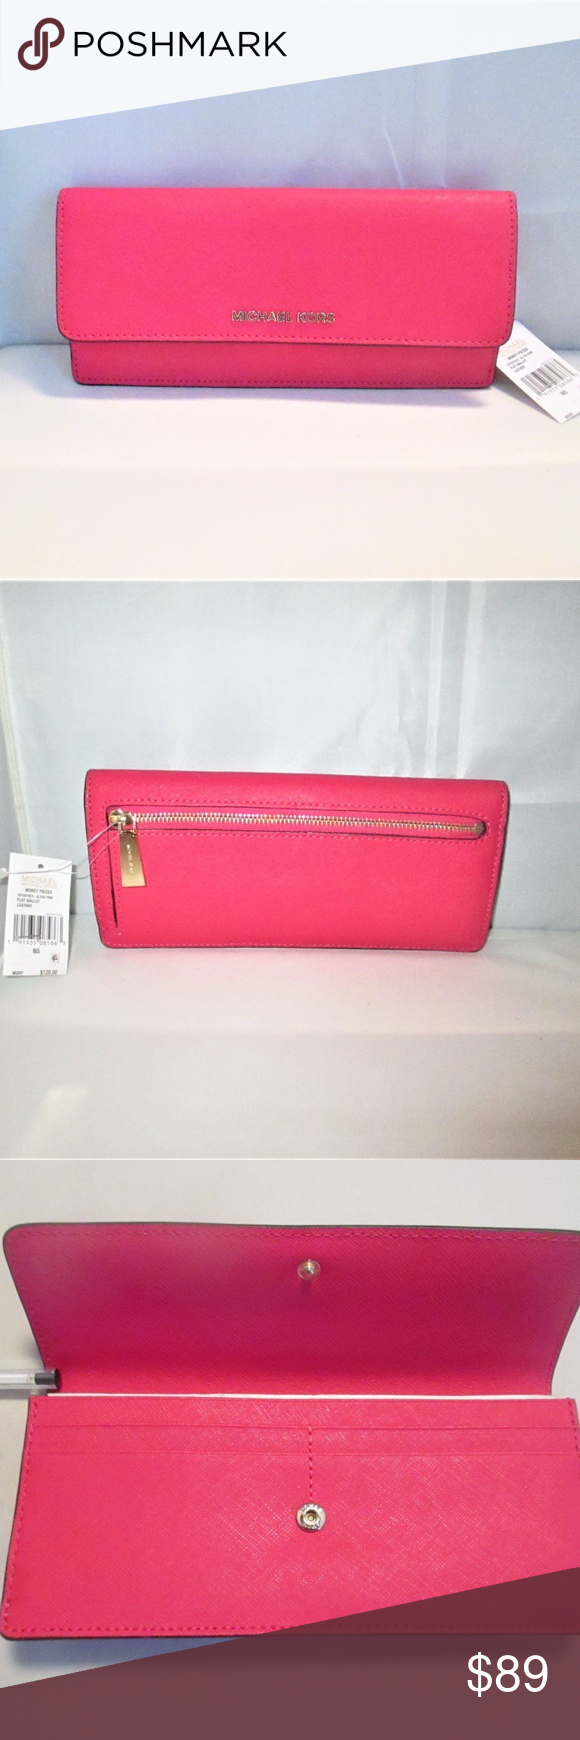 81b80fc1fe00 Michael Kors Money Pieces Flat Leather Wallet This wallet comes from a High  End Department Store